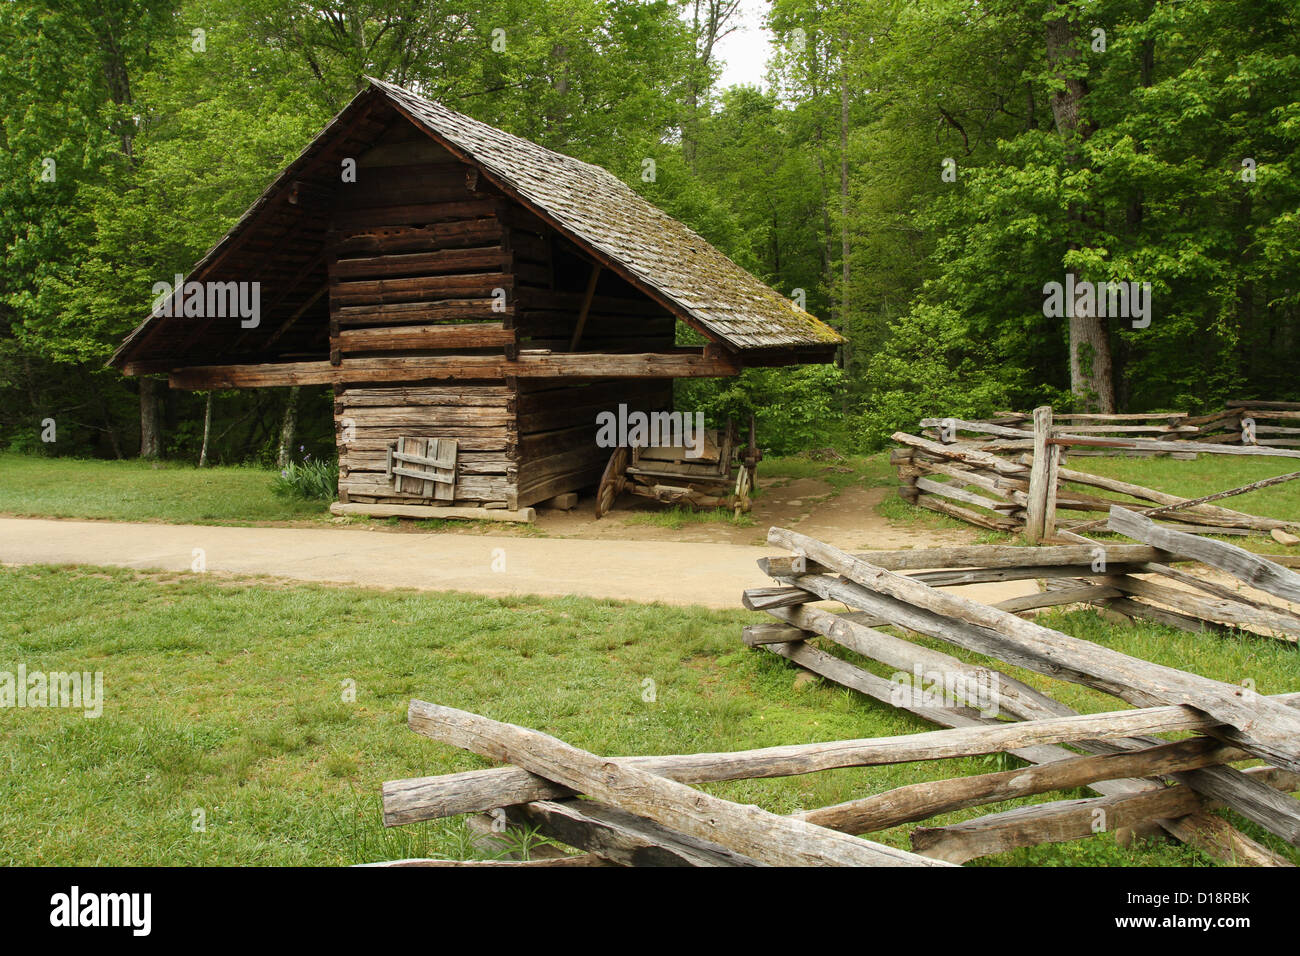 Corn Crib at Cable Mill, Cades Cove, Great Smokys National Park. Townsend, Tennessee, USA. - Stock Image